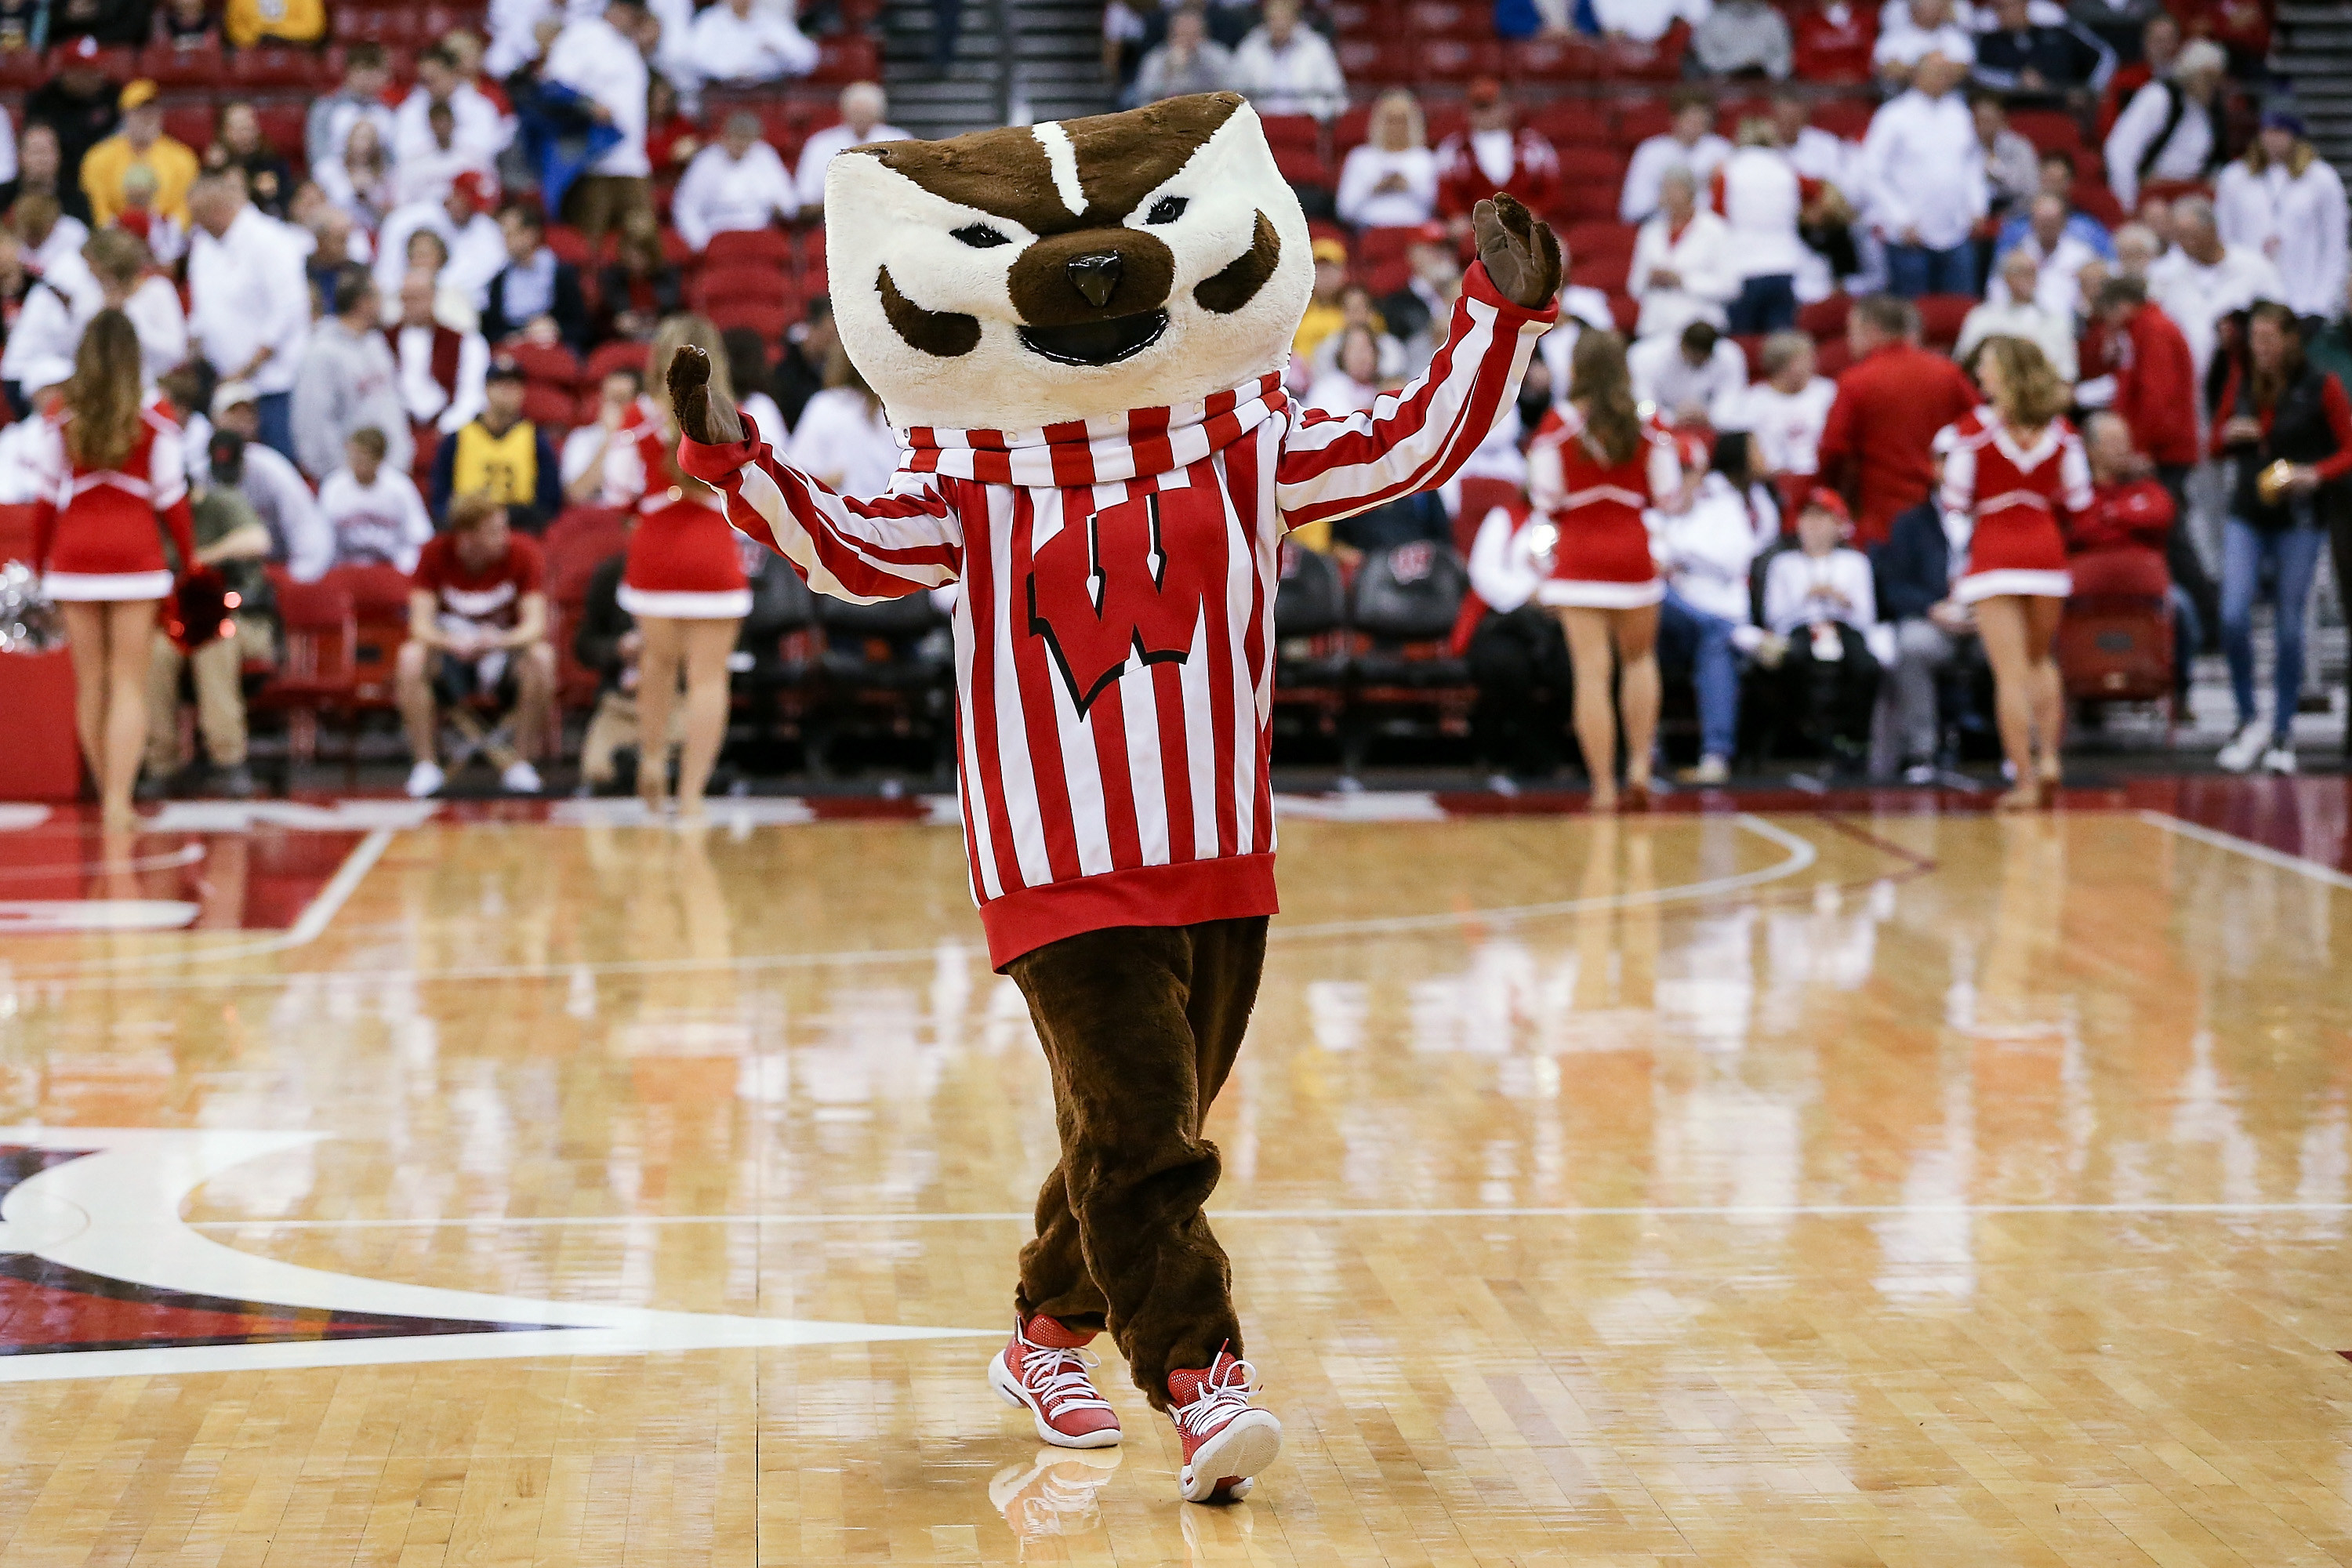 Wisconsin Badgers mascot pumping up the crowd.